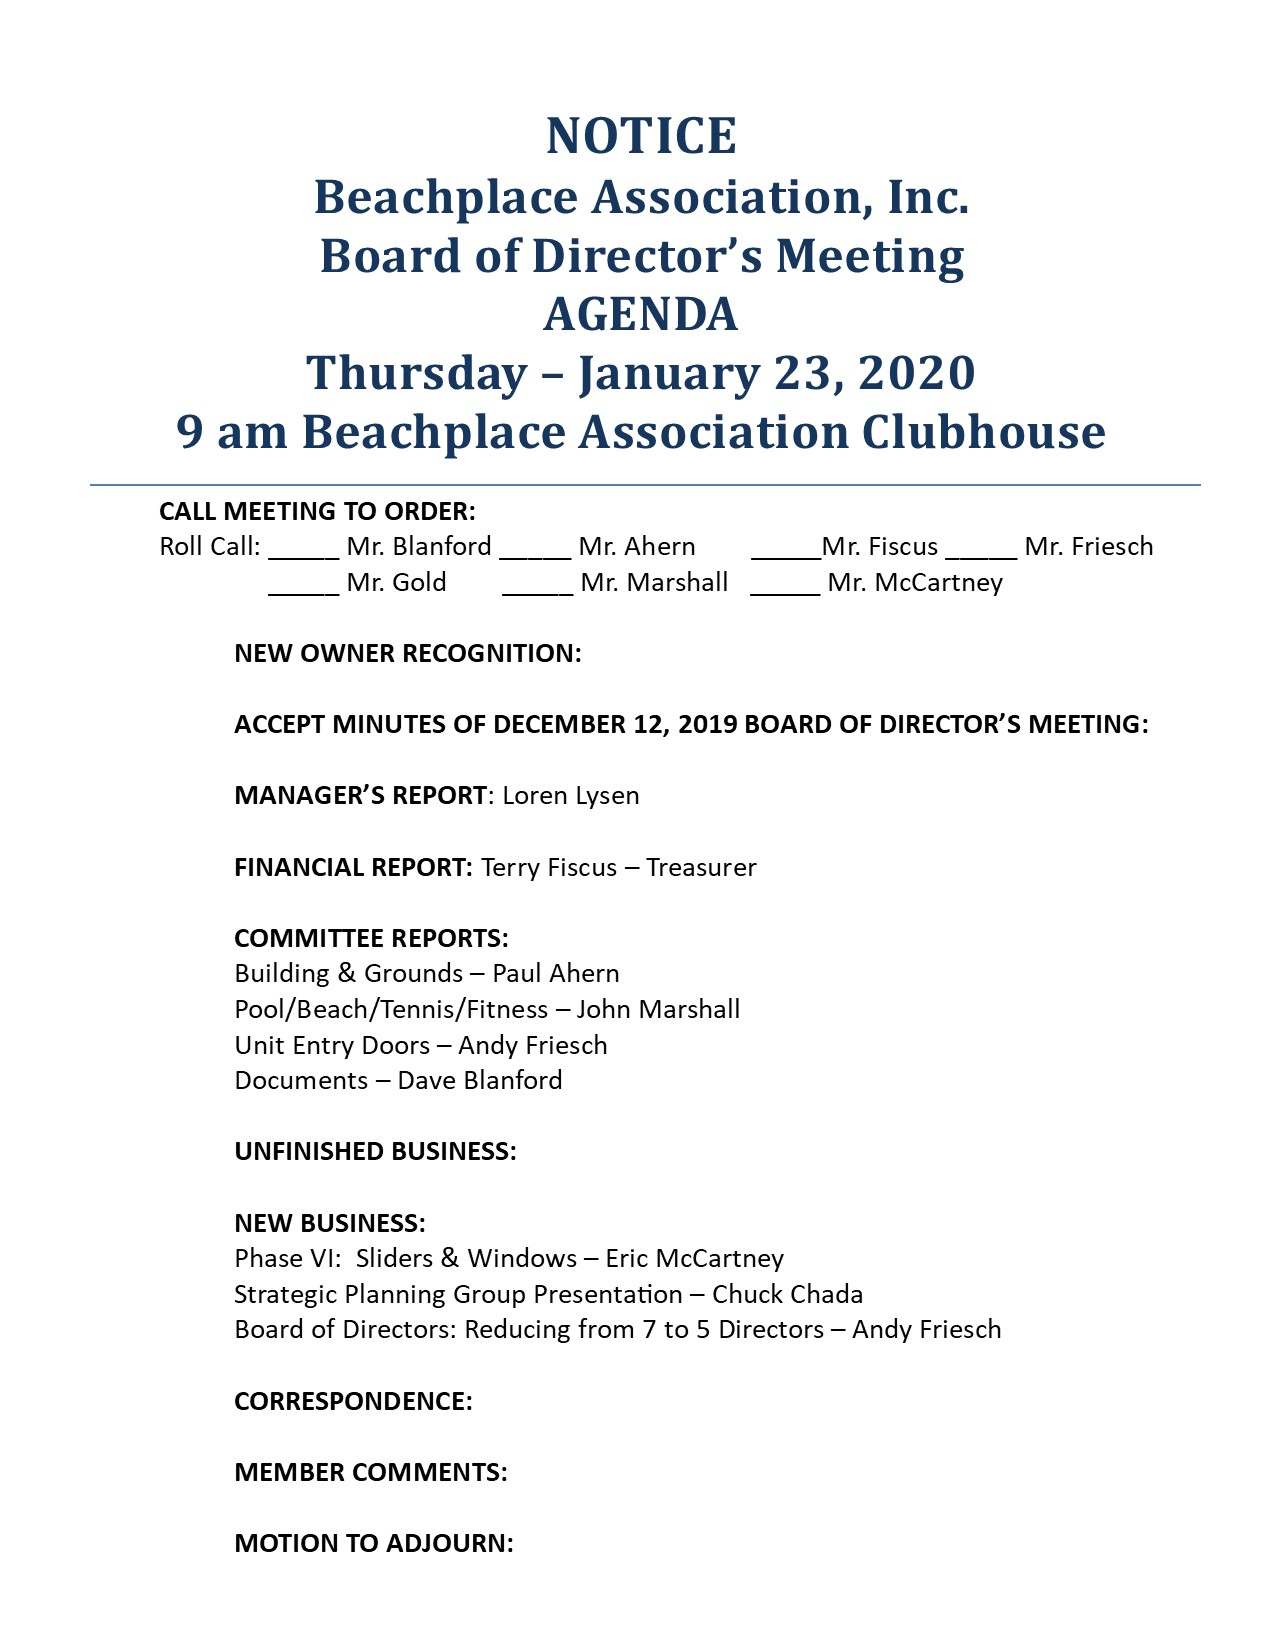 BOARD OF DIRECTORS MEETING @ The Beachplace Clubhouse